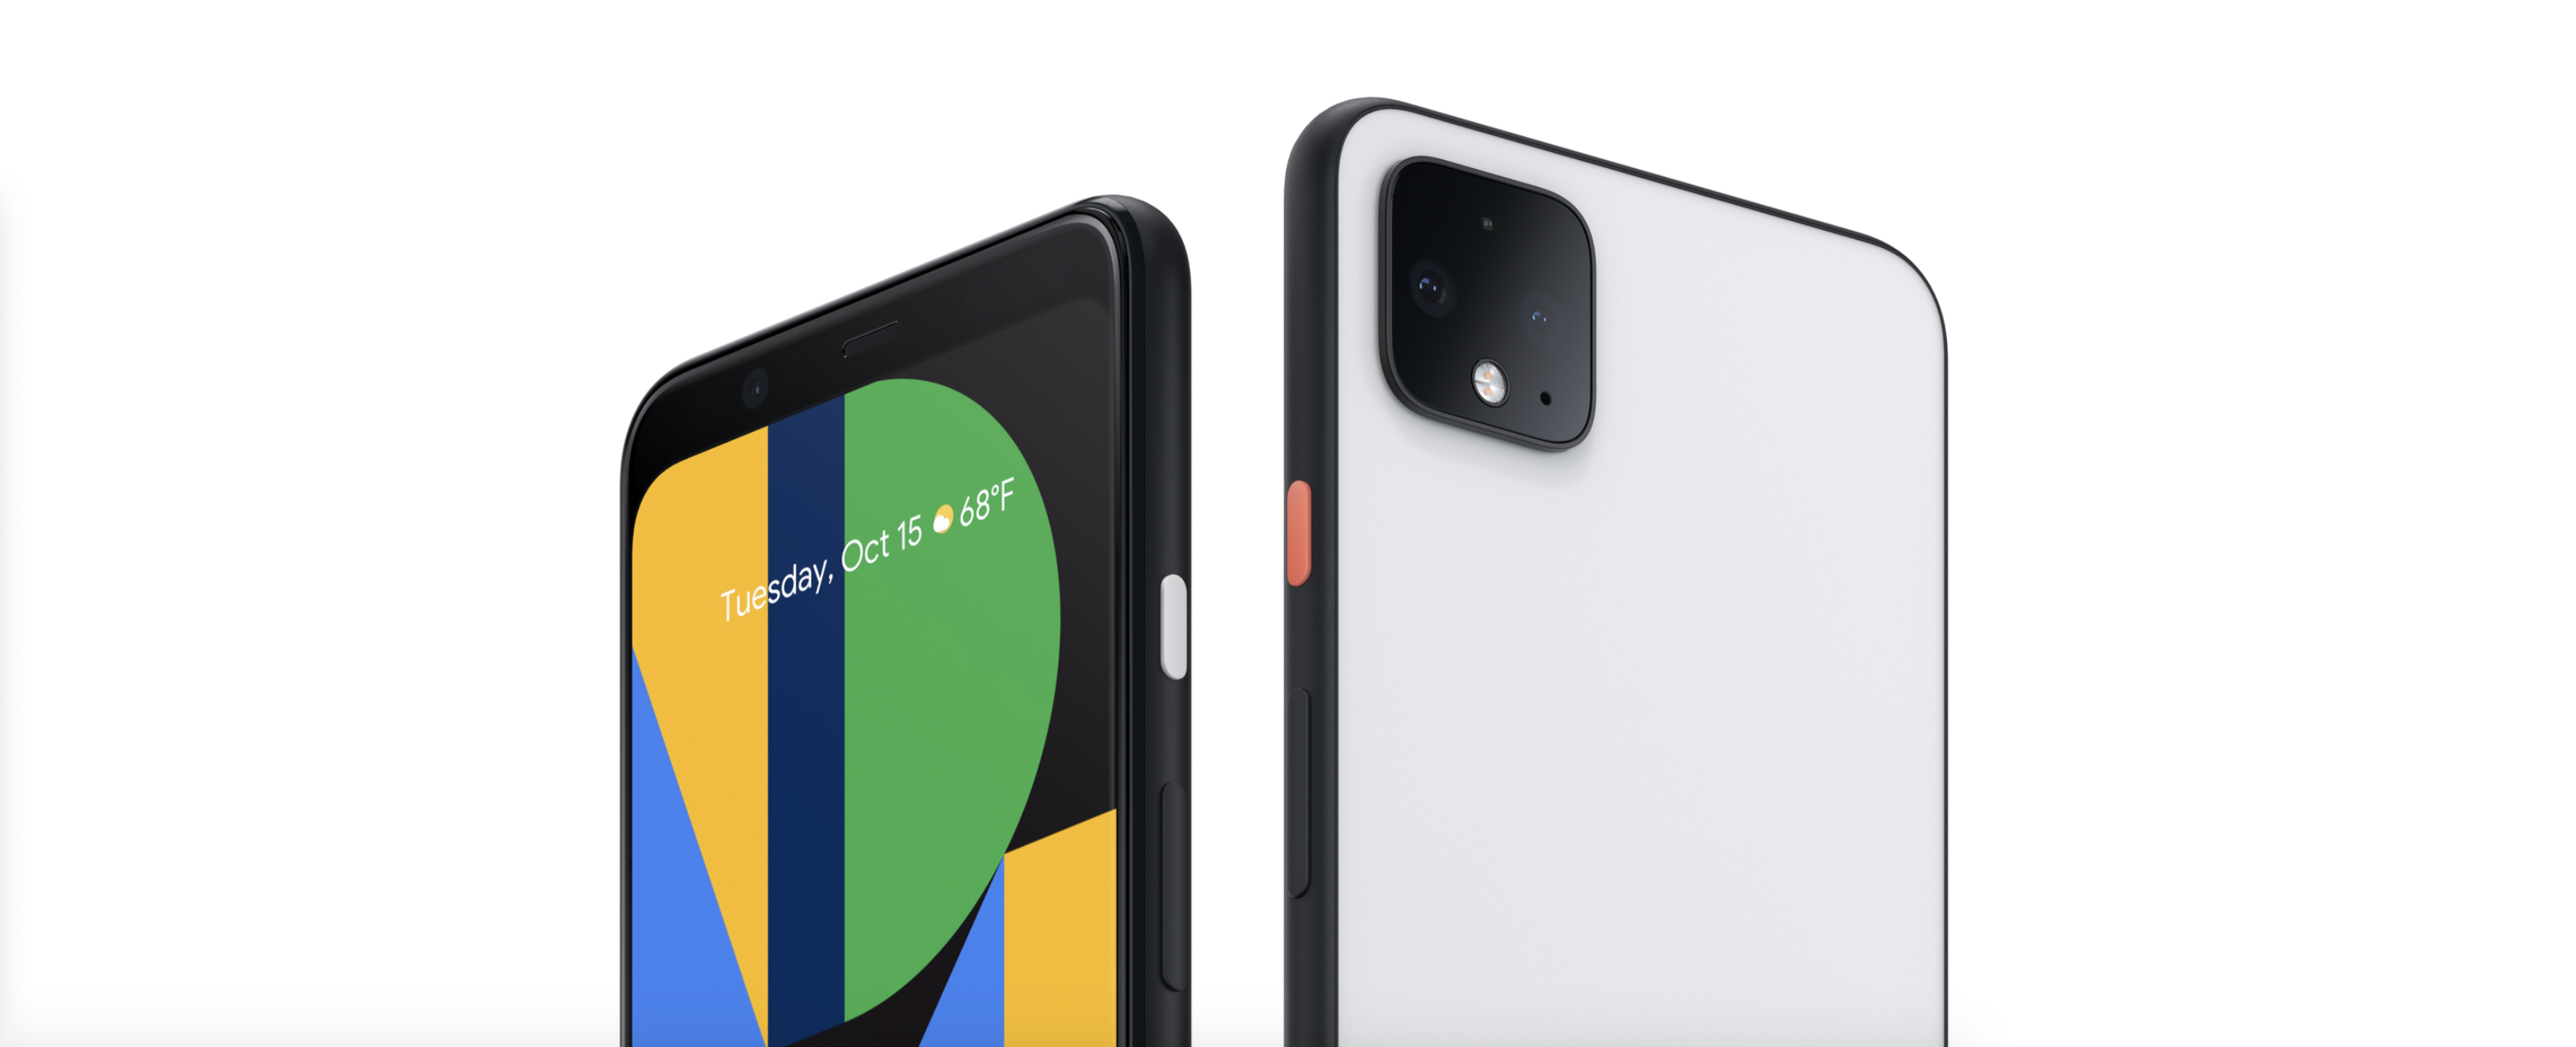 Pixel 4 only in eighth place in the DxO ranking. However, this does not mean a bad camera